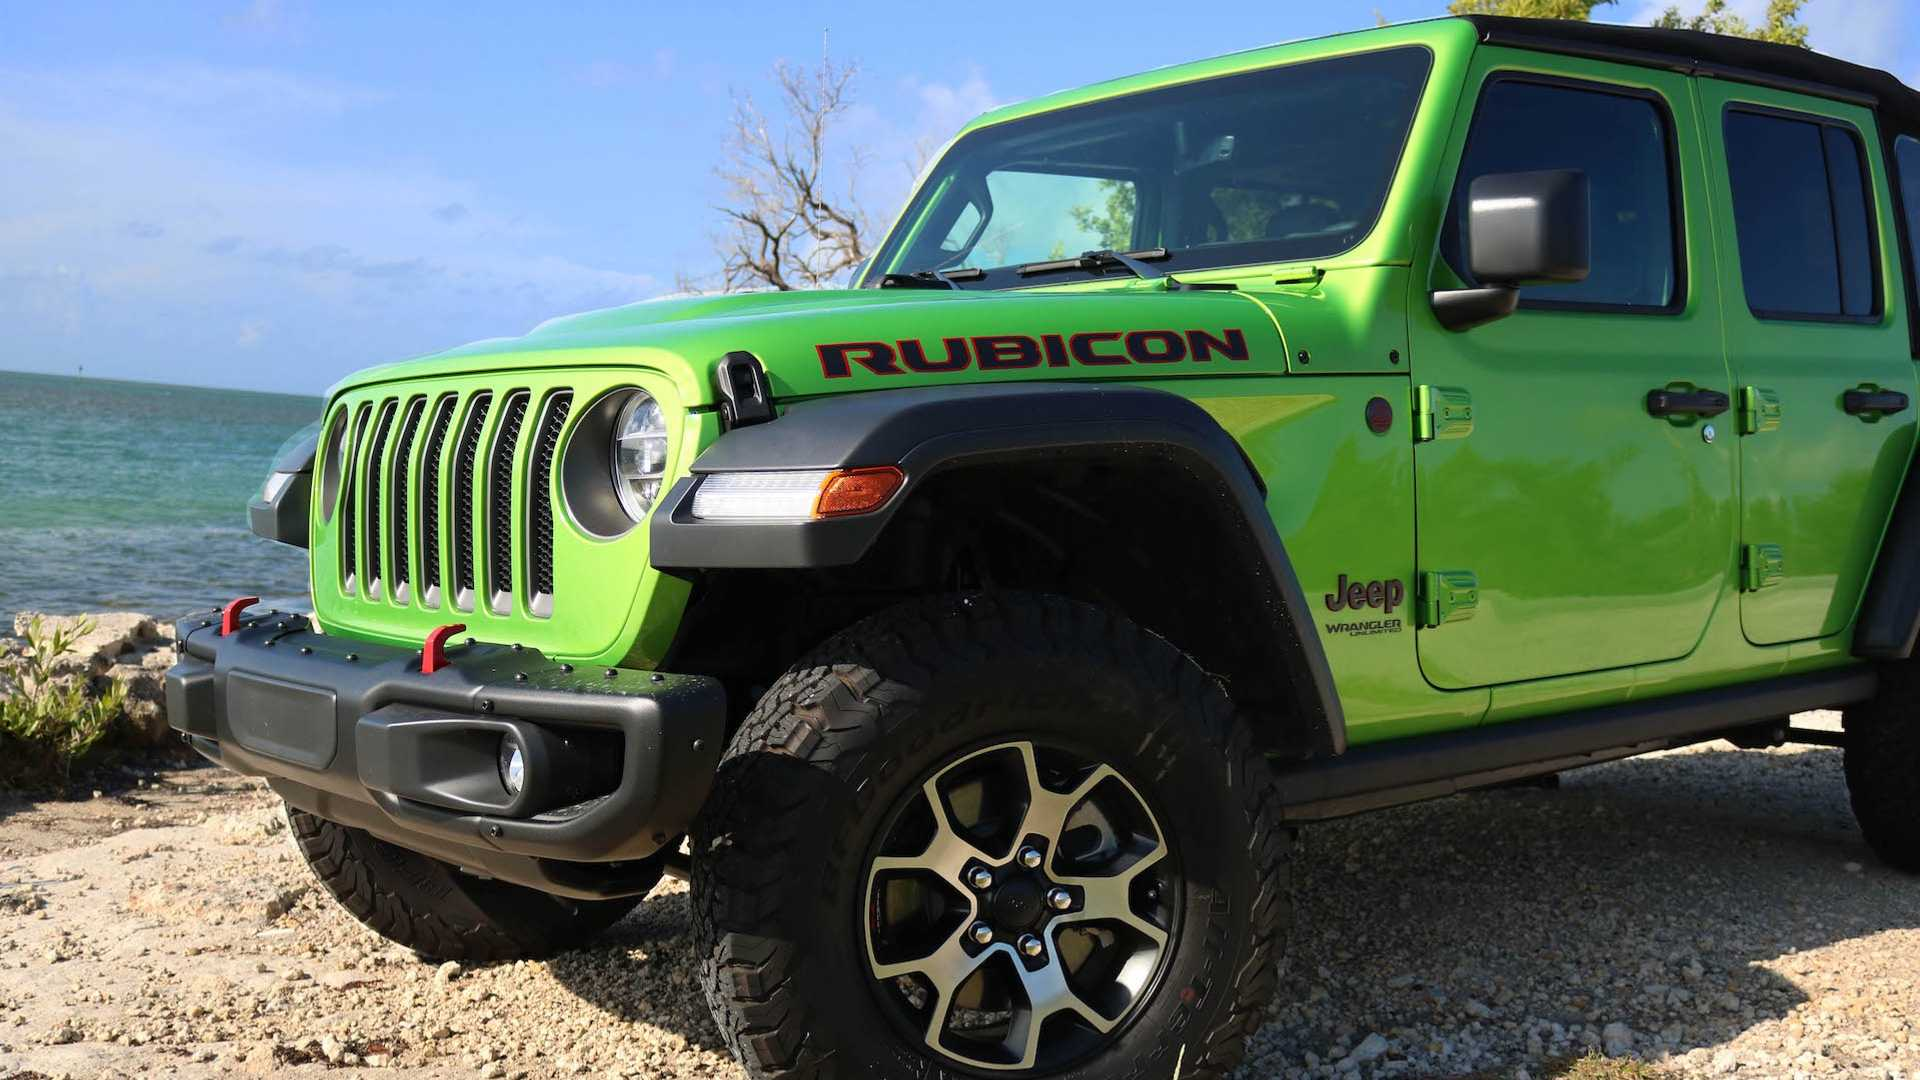 Jeep Has Found Fix For Alleged 'Death Wobble' In Wranglers